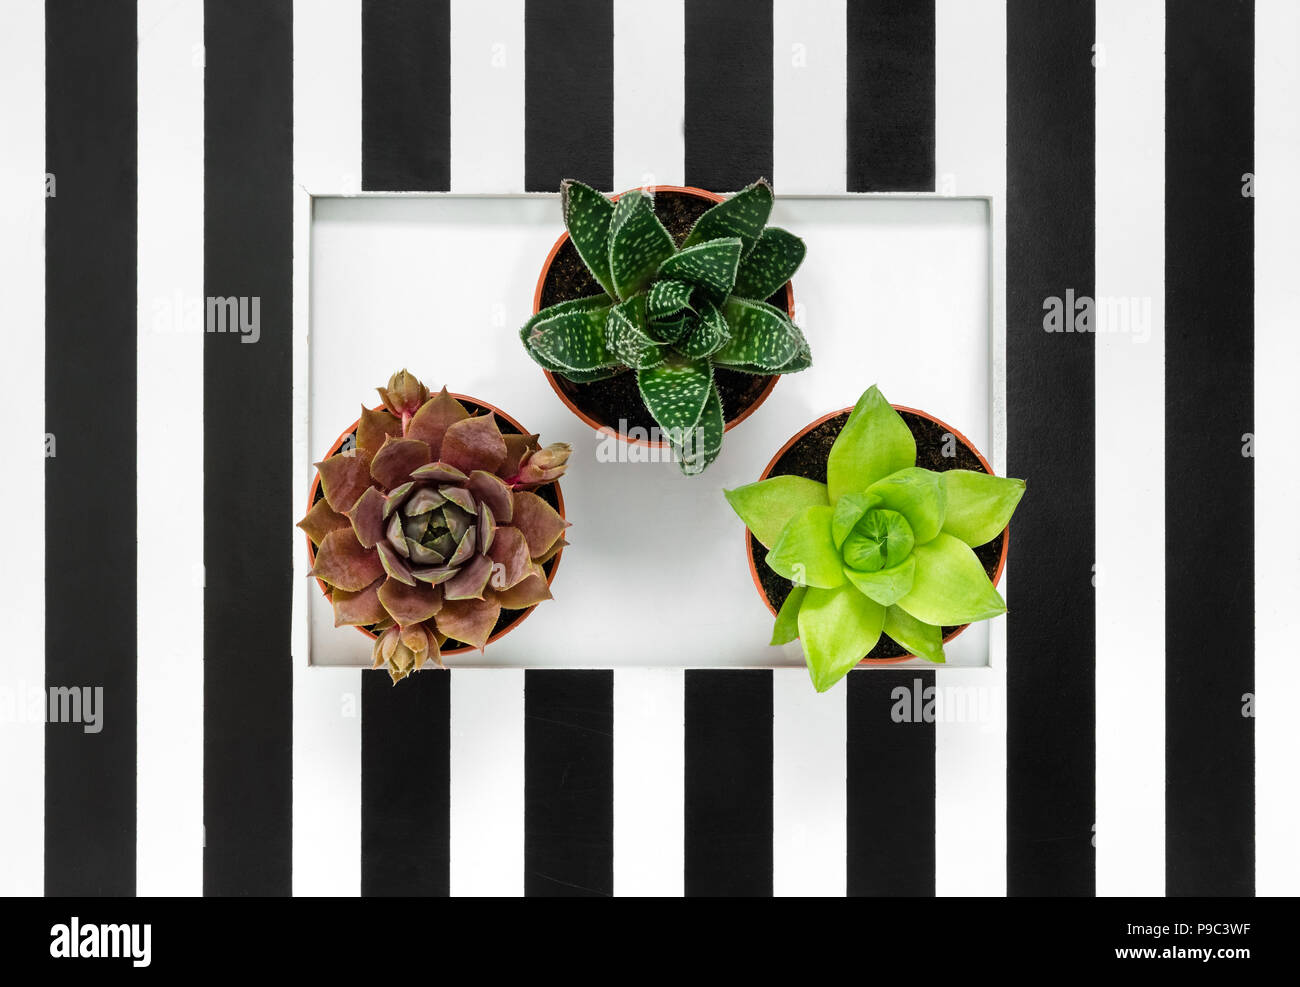 Green Succulent Plants On Black And White Striped Background